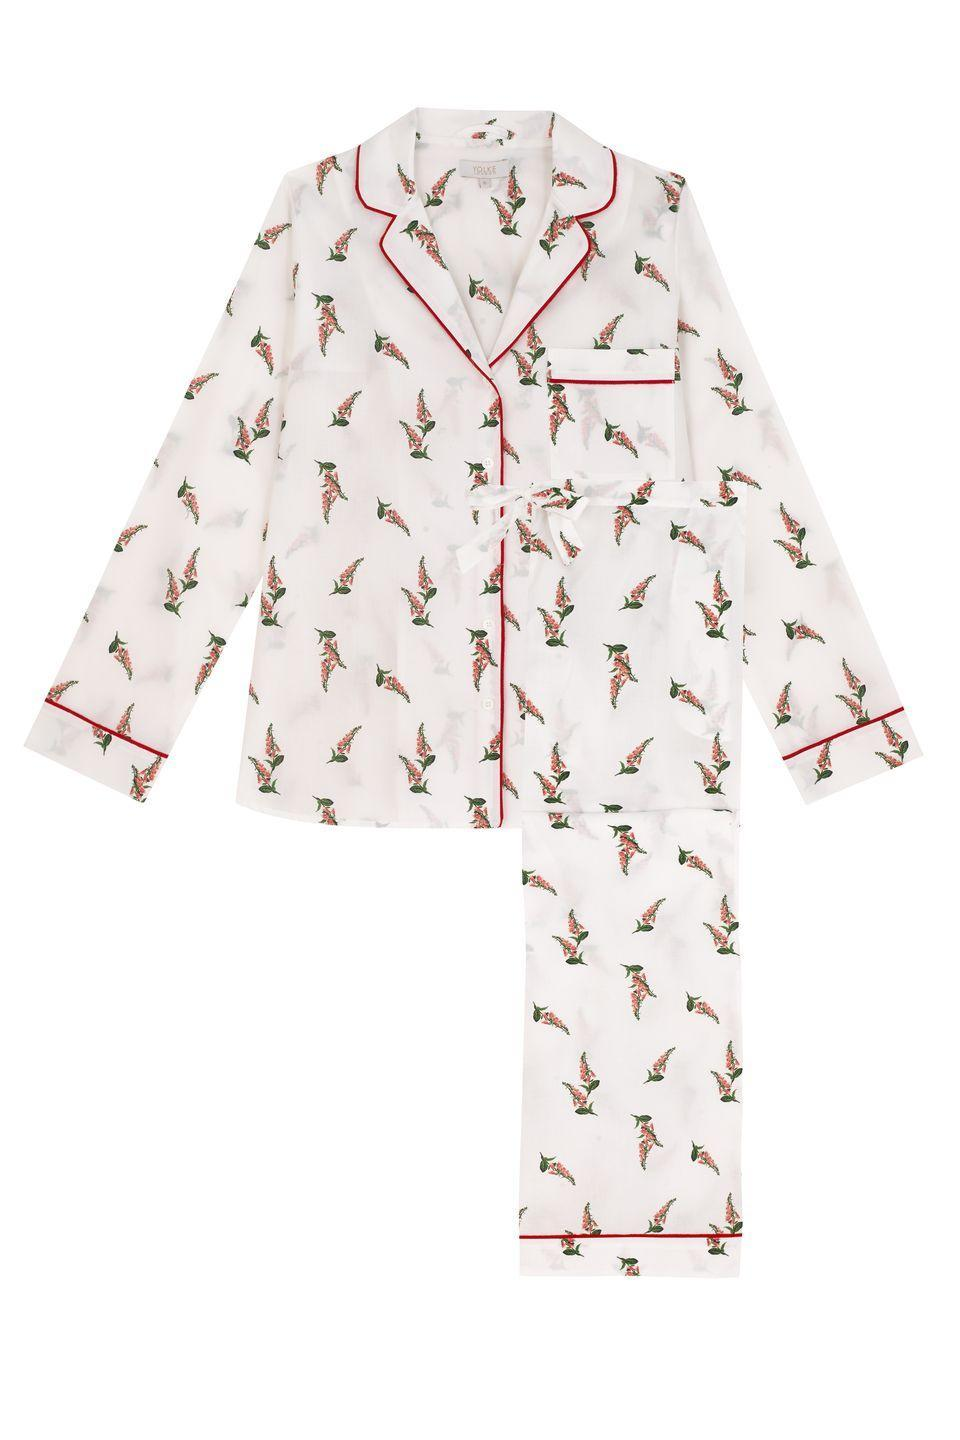 """<p>Yolke is synonymous with luxuriously soft and comfortable sleepwear that is smart enough to be worn during the day. This foxglove patterned pyjama set, made from cotton with a festive red grosgrain trim, would make a sweet surprise under the tree on Christmas morning. KP</p><p>£95, <a href=""""https://www.yolke.co.uk/collections/the-christmas-shop-1/products/foxglove-print-cotton-pyjama-set"""" rel=""""nofollow noopener"""" target=""""_blank"""" data-ylk=""""slk:Yolke"""" class=""""link rapid-noclick-resp"""">Yolke</a></p>"""